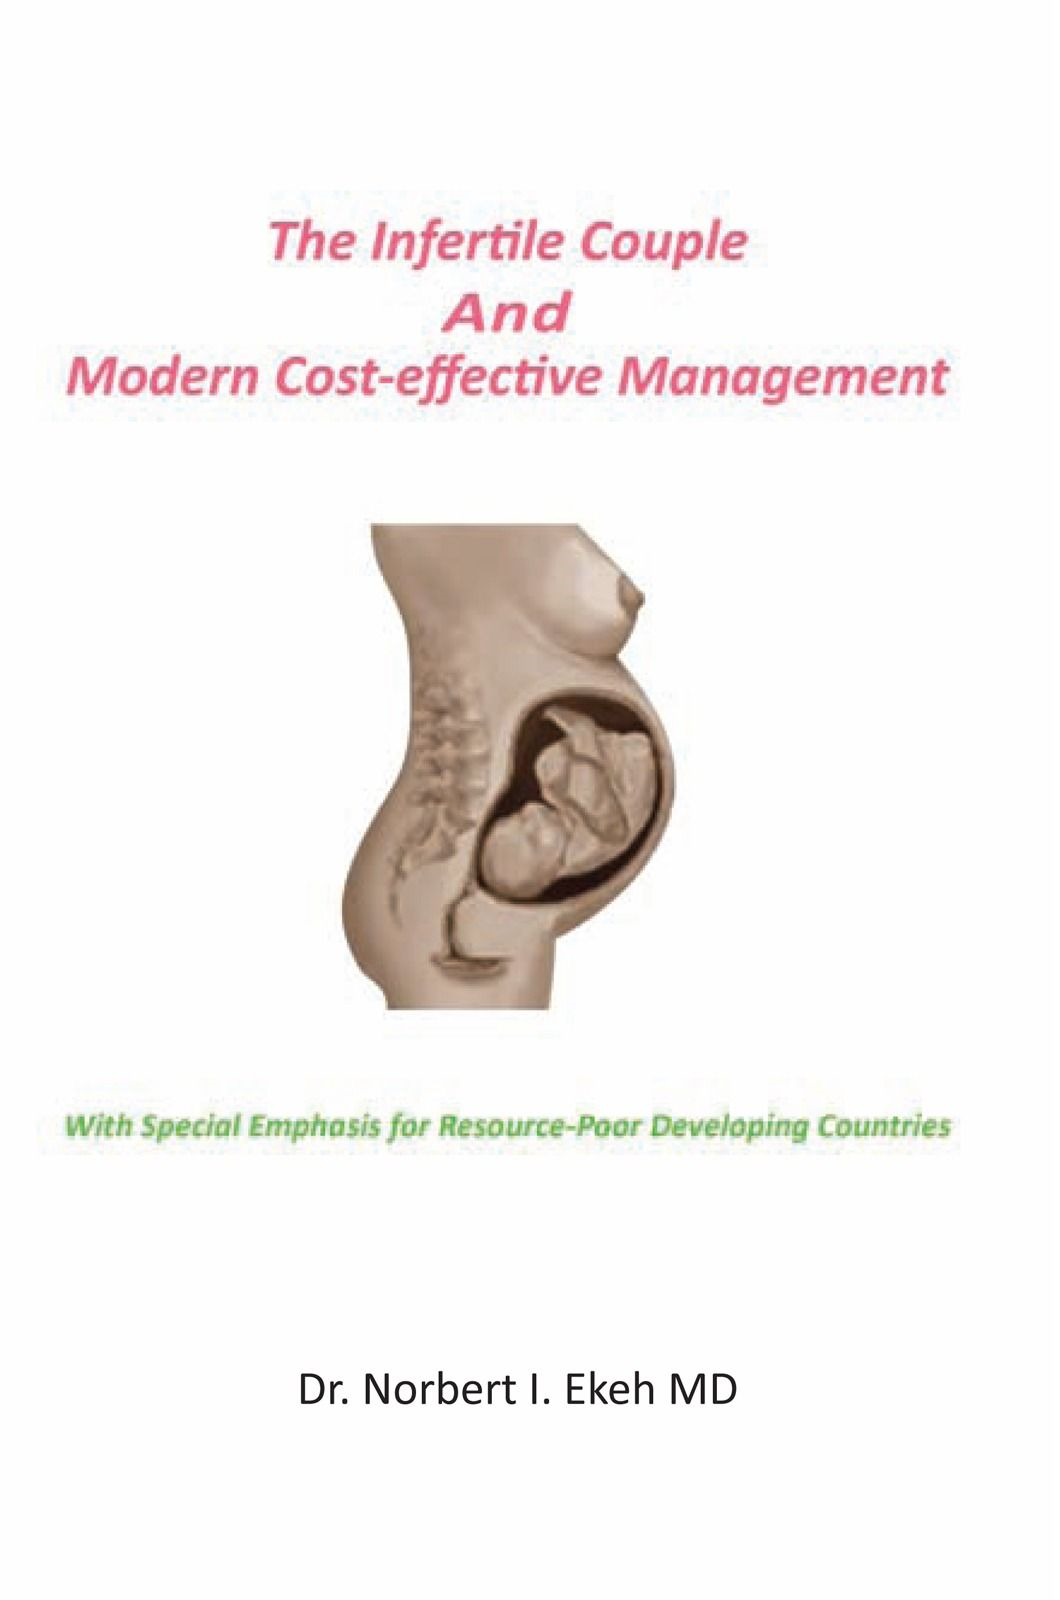 The Infertile Couple And Modern Cost-effective Management